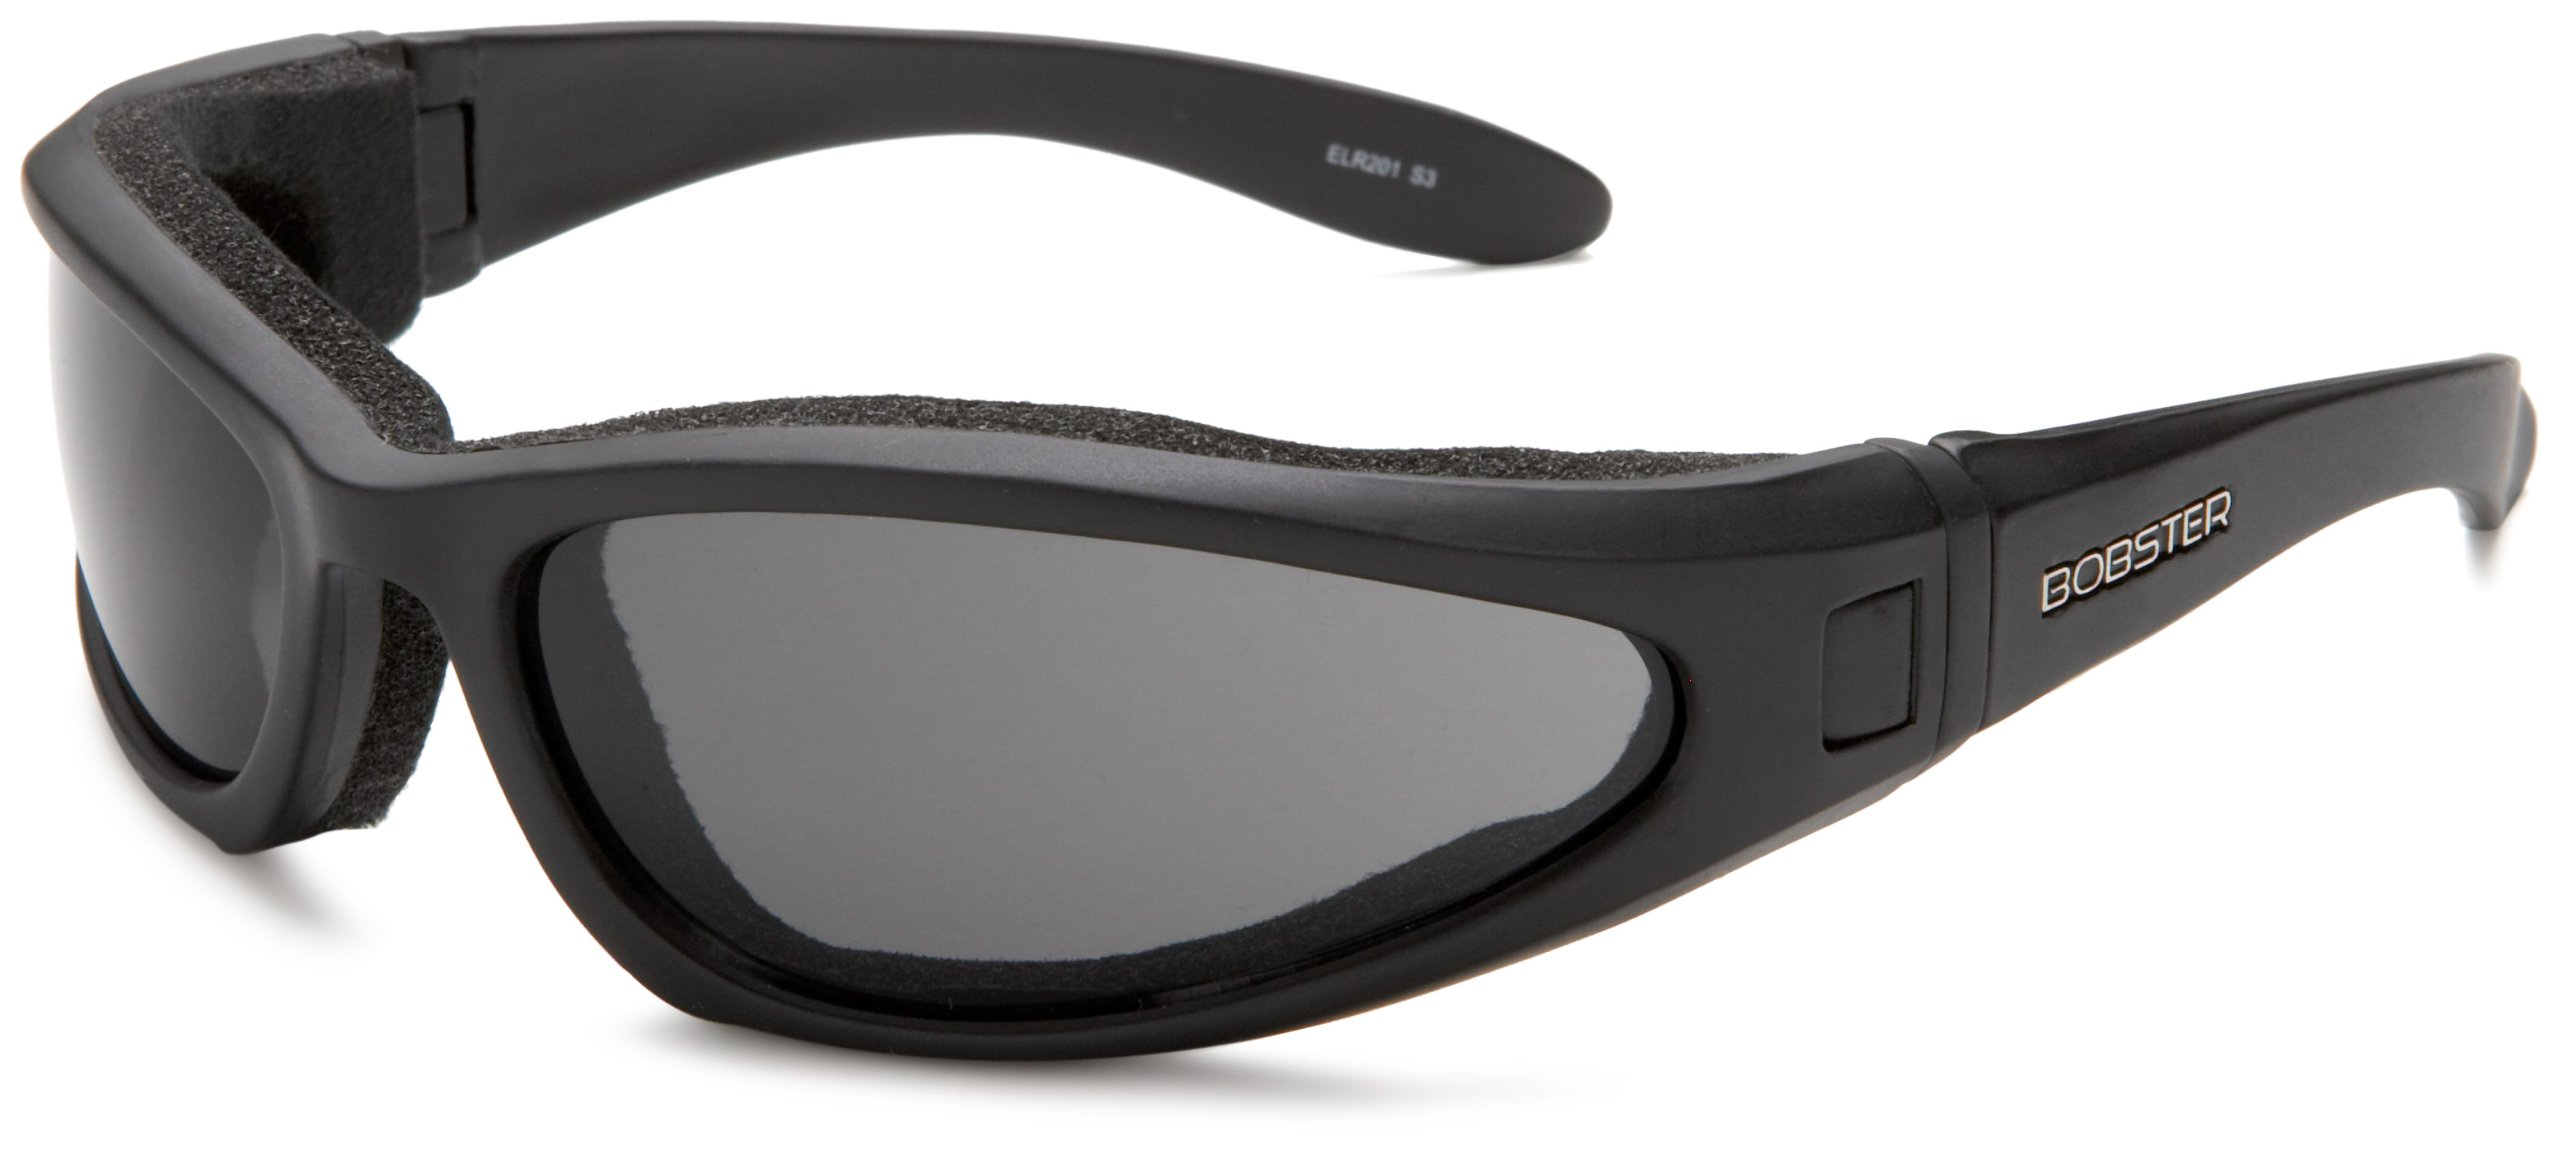 Bobster ELR201 Low Rider II Sport Sunglasses,Black Frame/3 Lenses (Smoked, Amber and Clear),one size